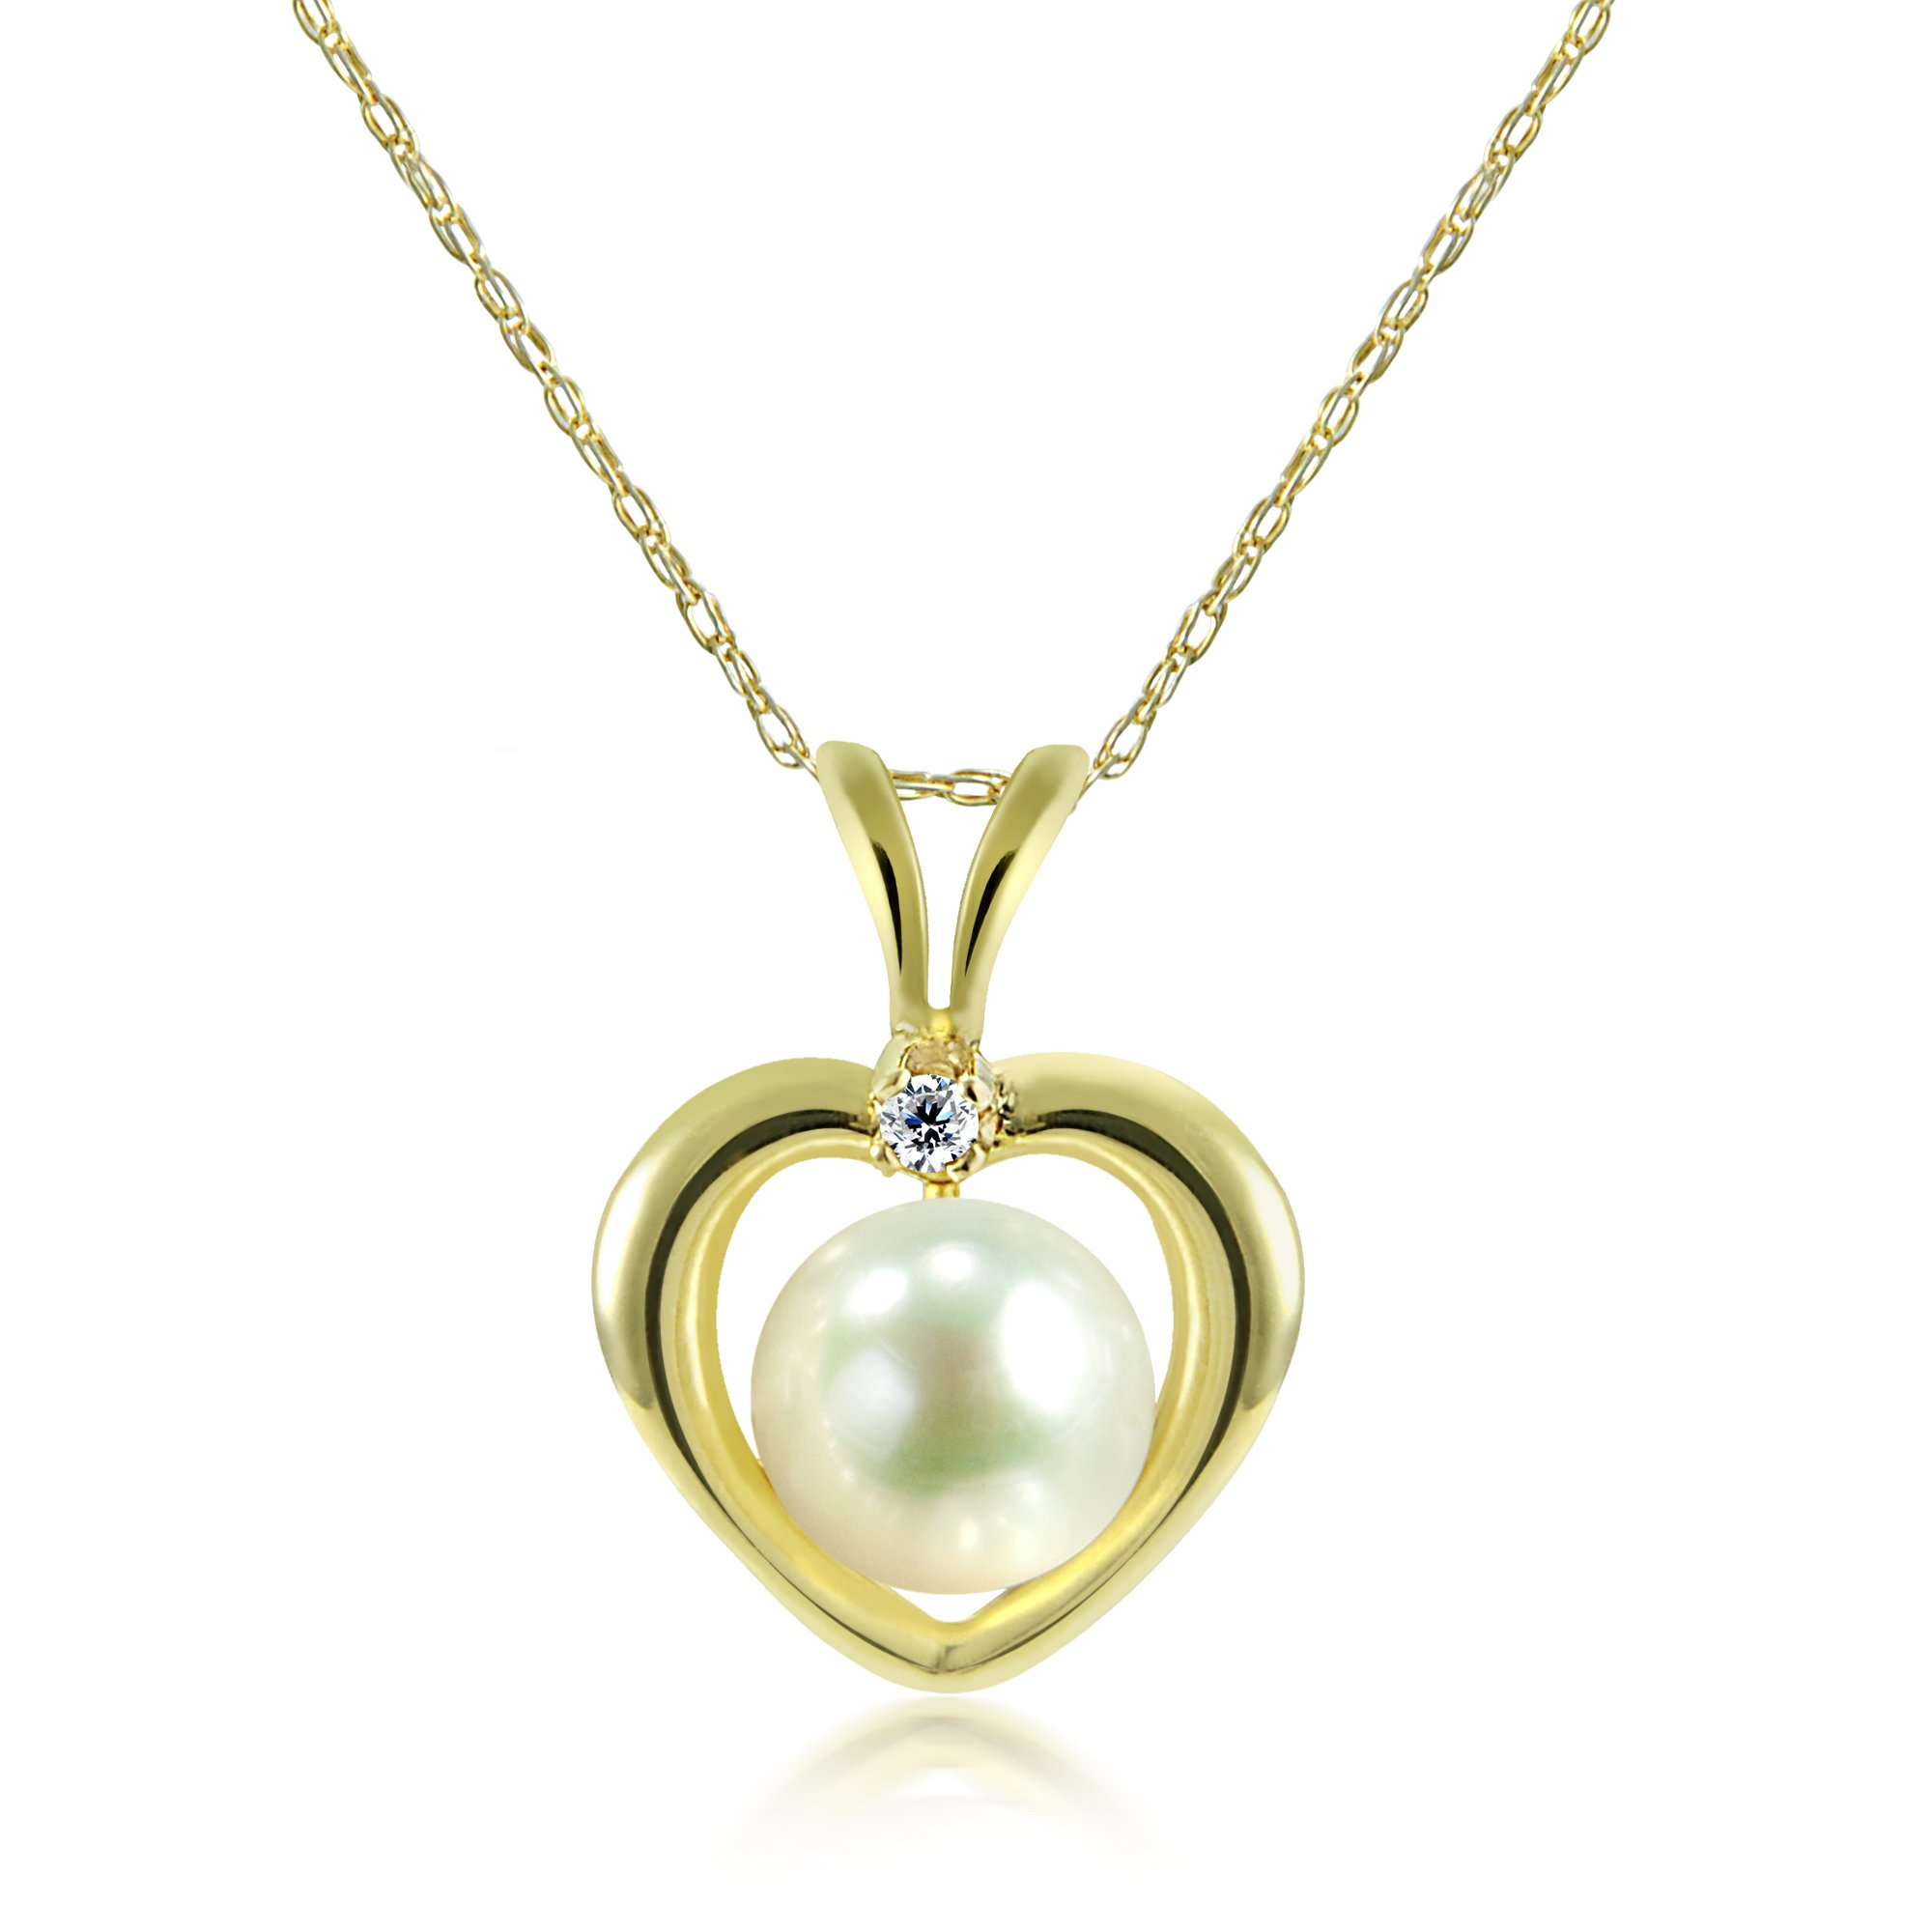 La Regis Jewelry 14k Yellow Gold 5-5.5mm White Freshwater Cultured Pearl and 1/100cttw Diamond Pendant Necklace, 13''